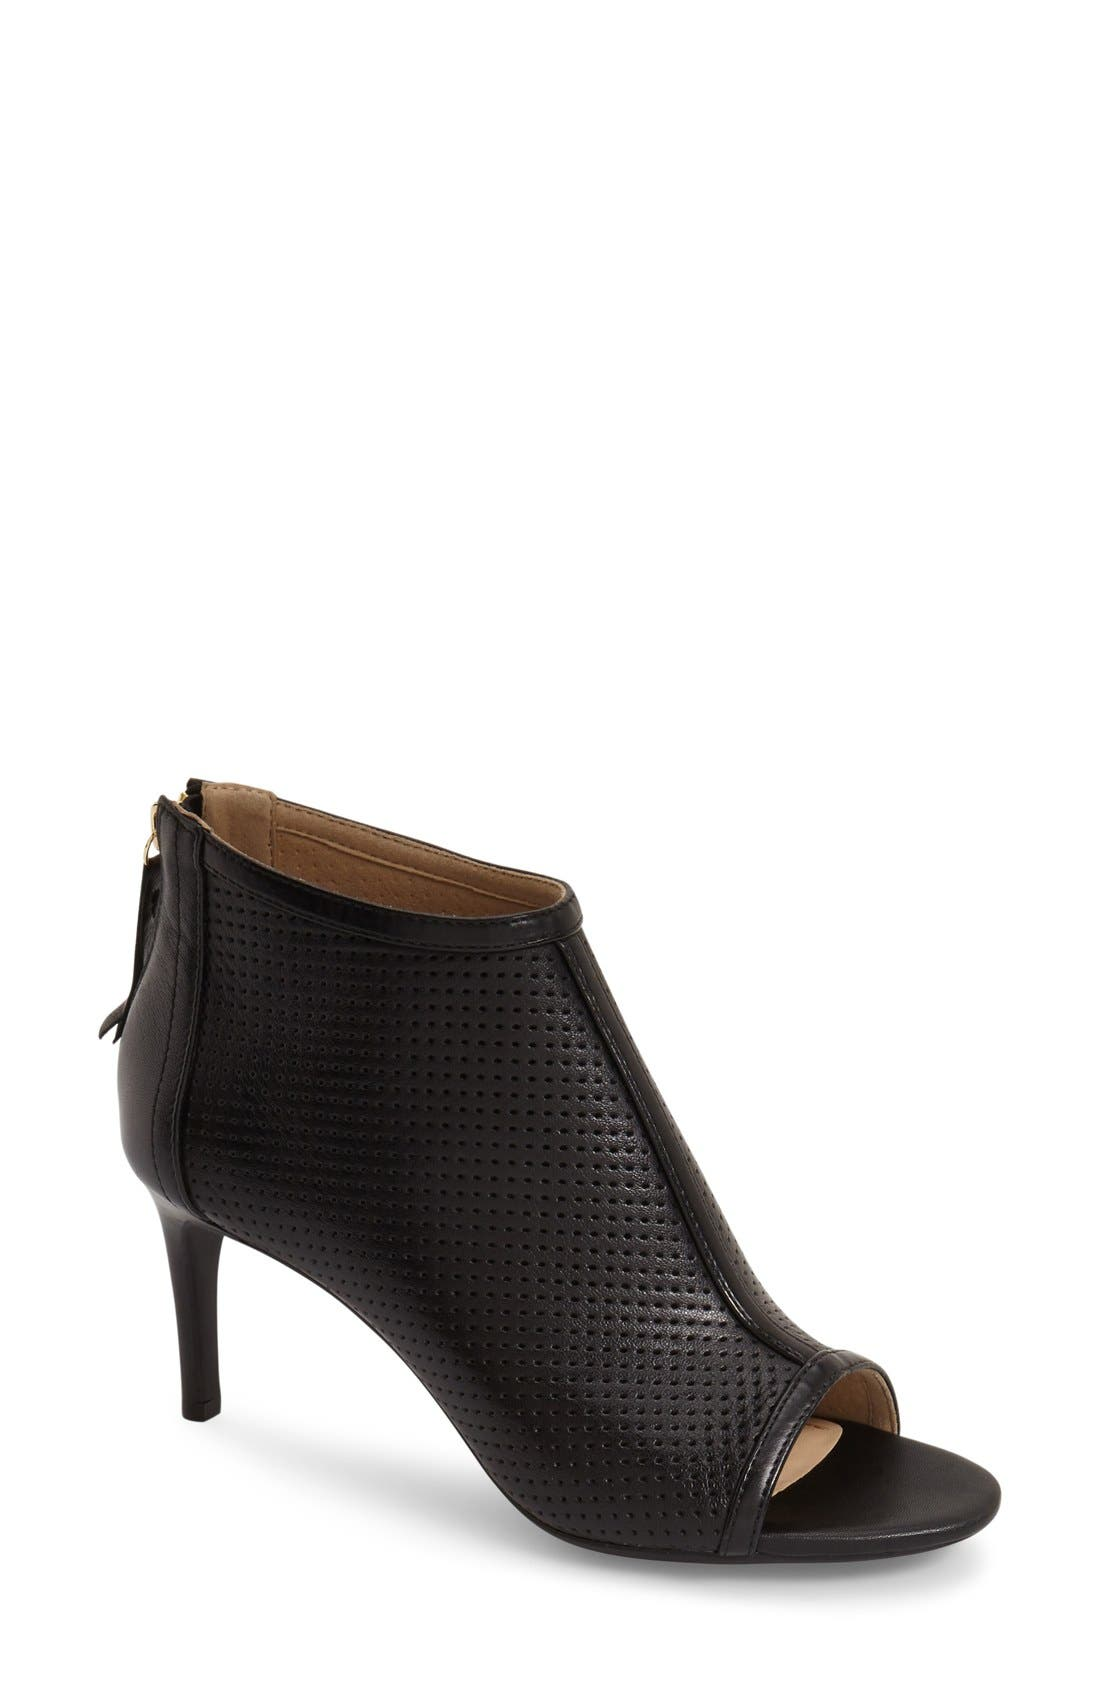 Alternate Image 1 Selected - Geox 'Audie' Peep Toe Bootie (Women)